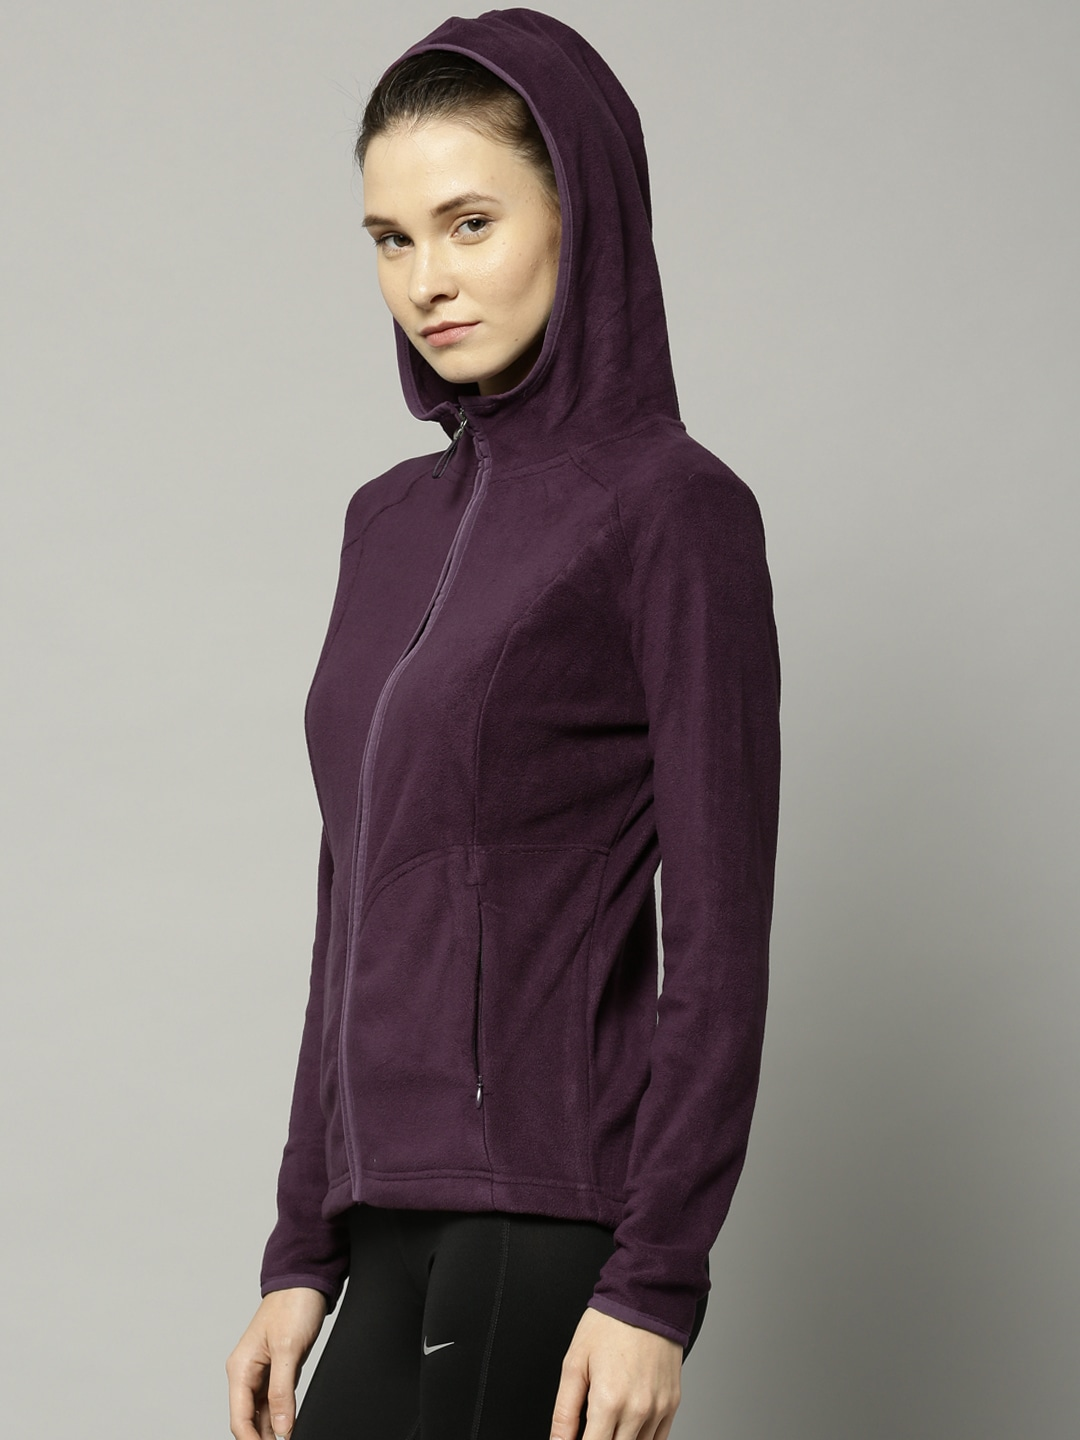 Buy Marks And Spencer Purple Hooded Sweatshirt - Sweatshirts for ...